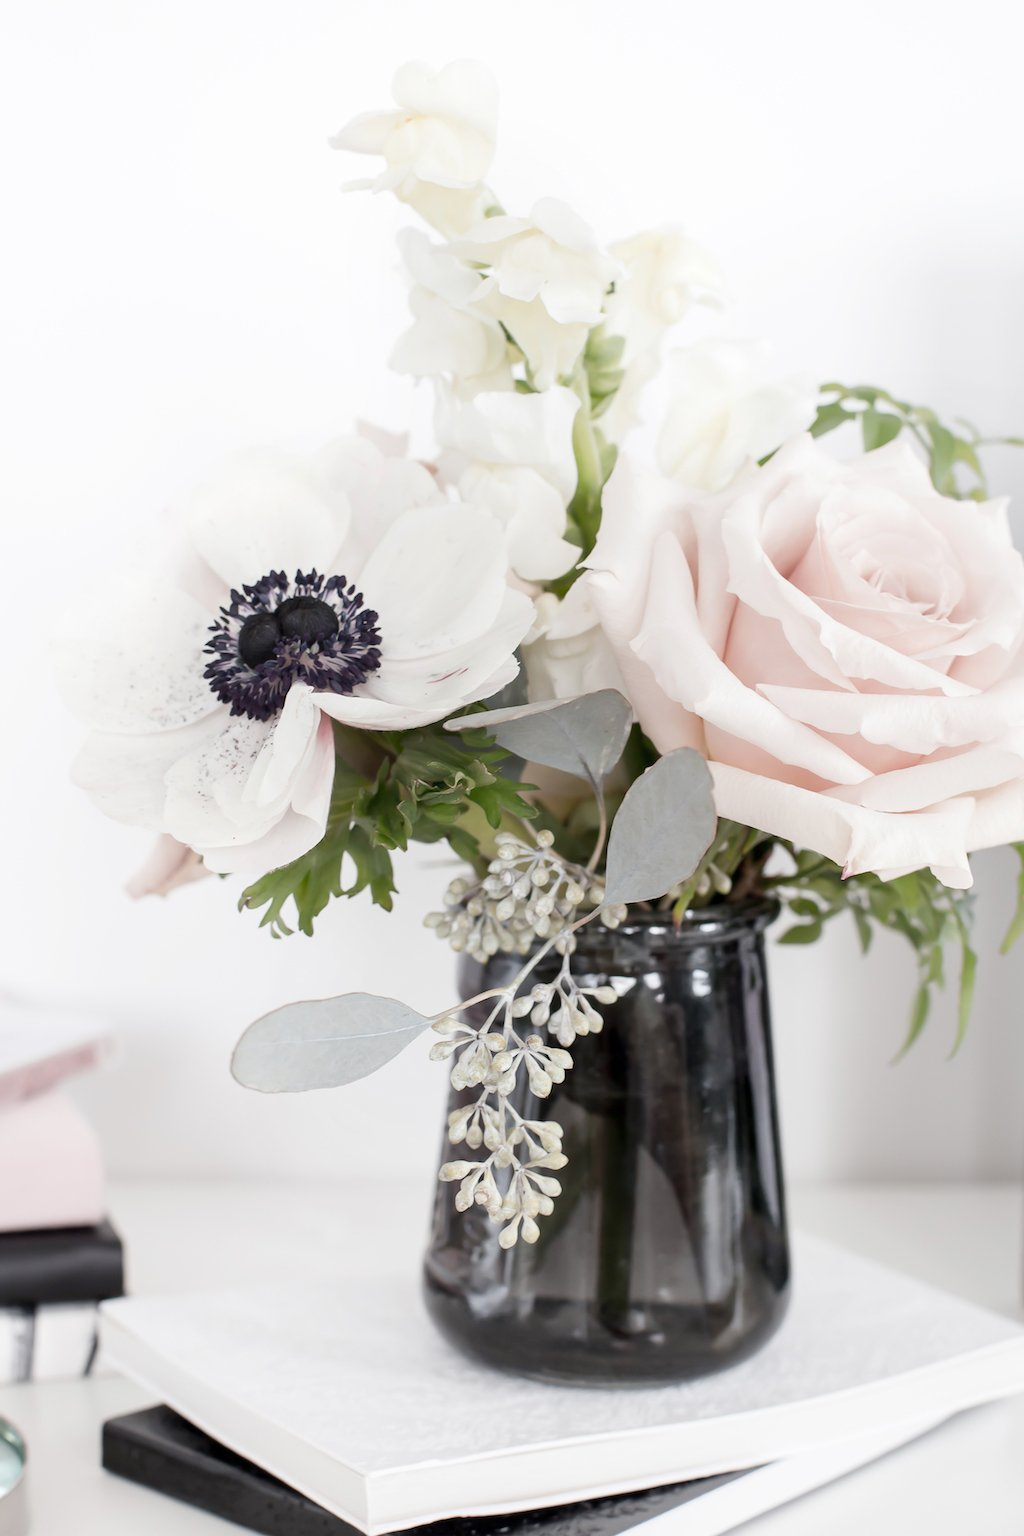 Vase with pink, black, and white flowers.